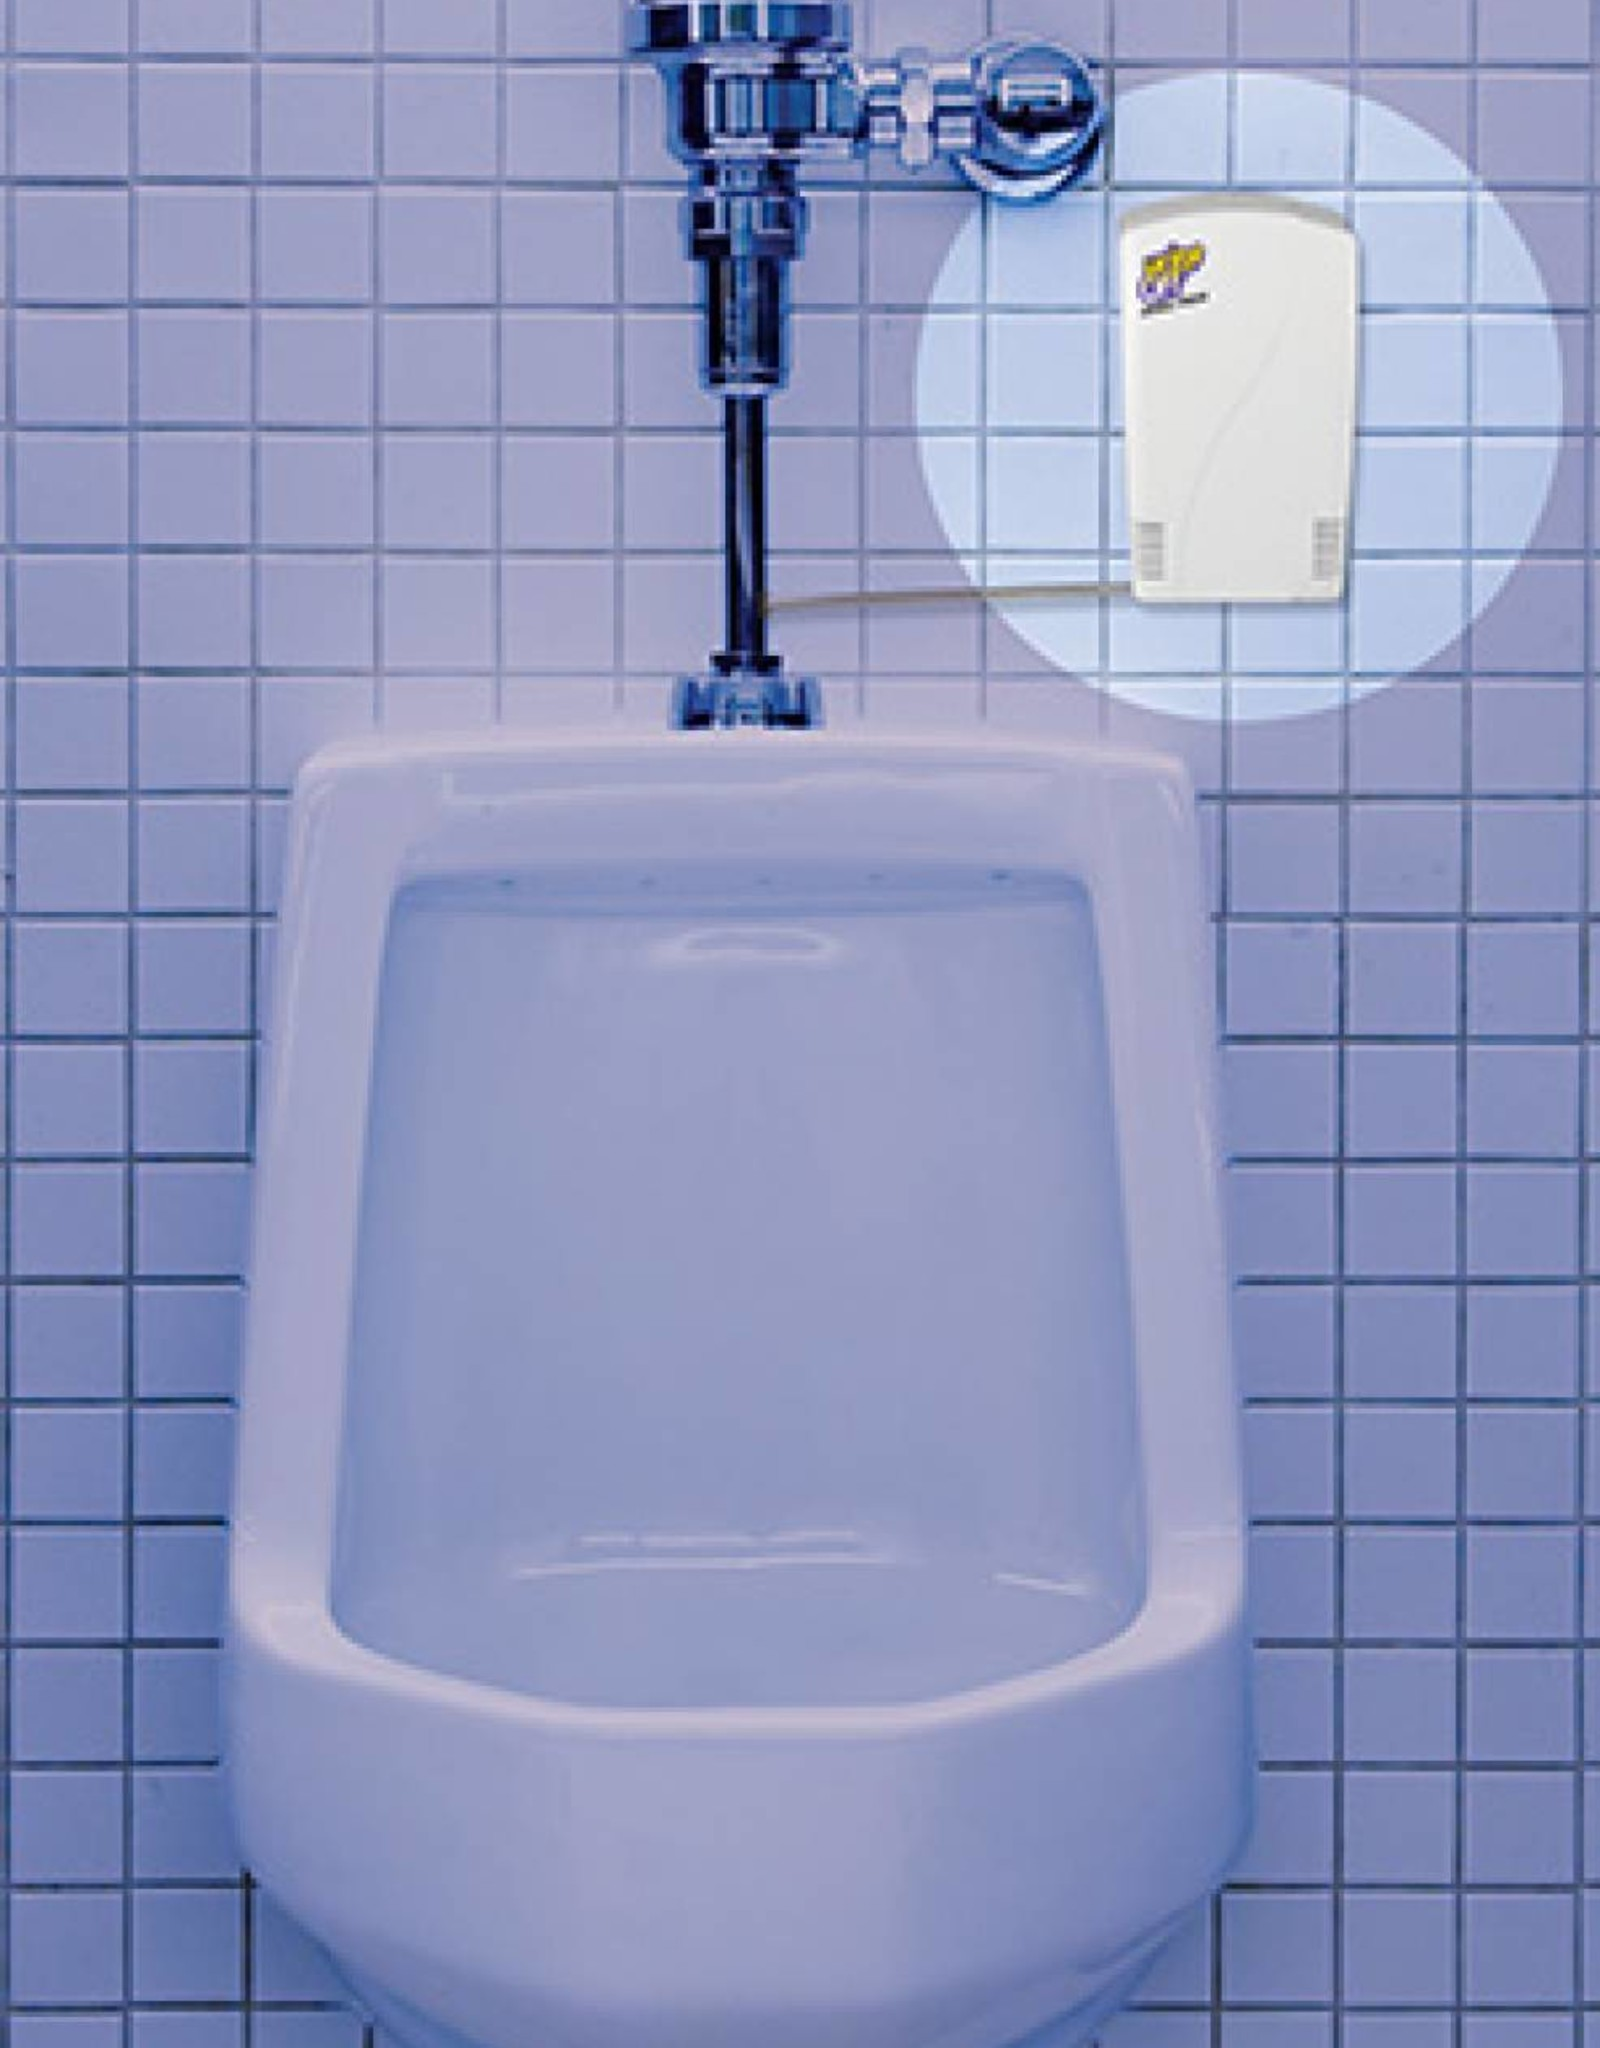 Urine Off - Urinal Fresh - Urinal Fresh Injection System1 piece